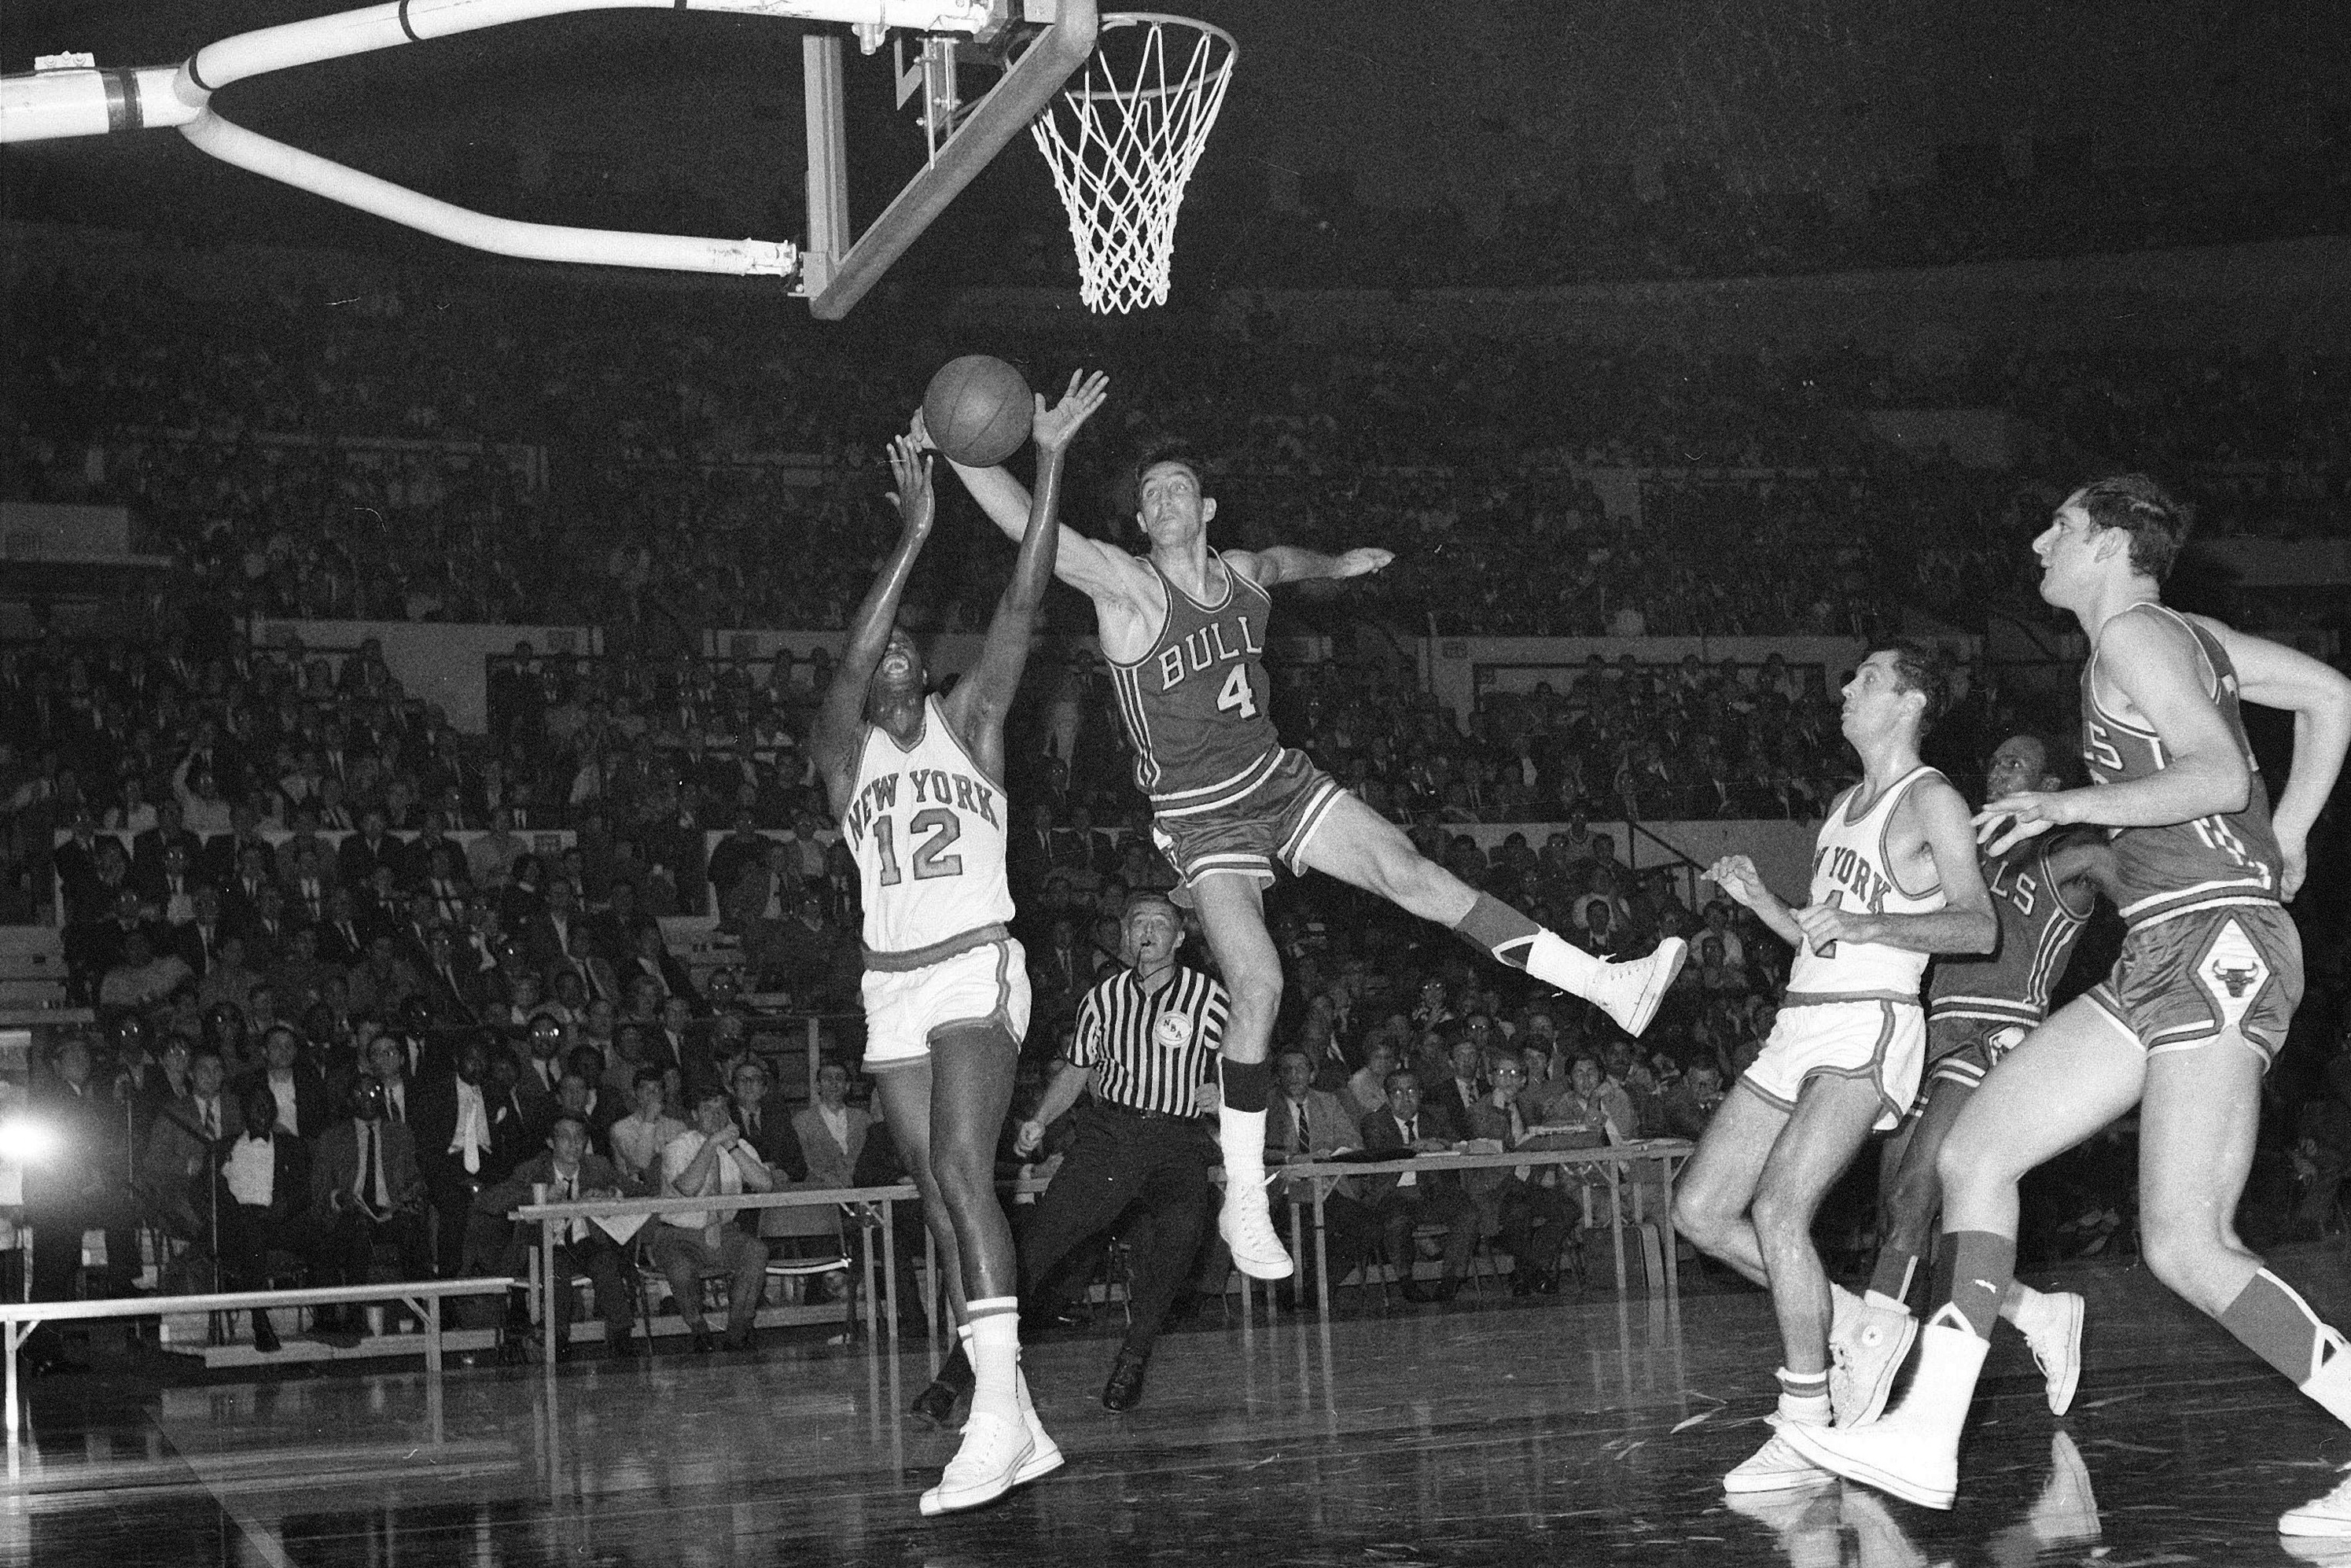 """""""Jerry Sloan was 'The Original Bull' whose tenacious defense and nightly hustle on the court represented the franchise and epitomized the city of Chicago,'' Bulls board chairman Jerry Reinsdorf said."""